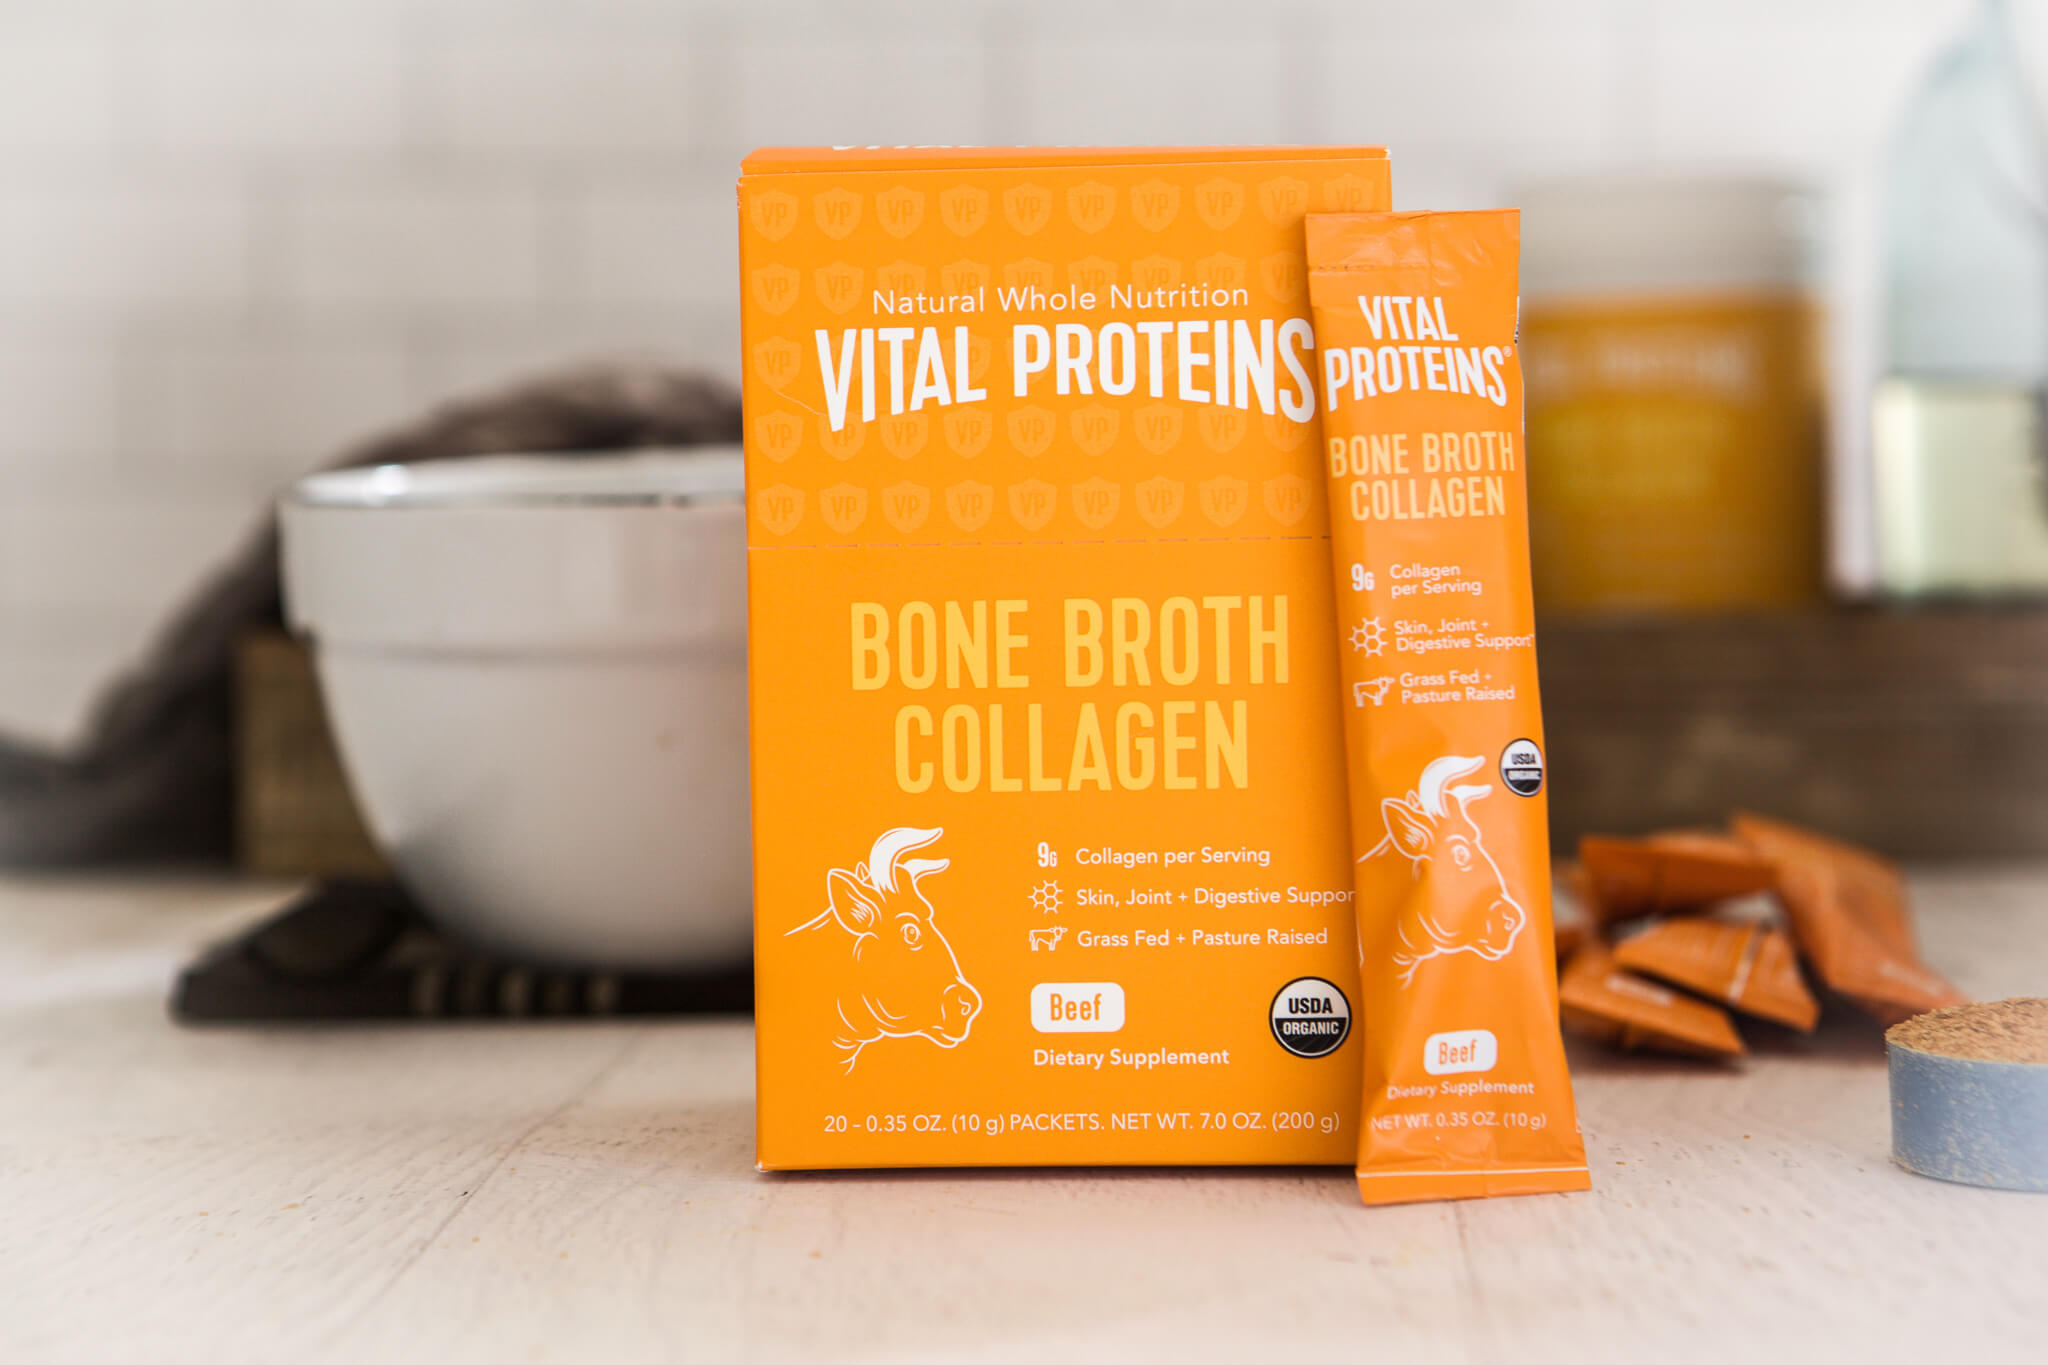 Bone Broth Benefits www.sarahkayhoffman.com #guthealth #bonebroth #guthealing #StayVital Vital Proteins Beef Collagen Bone Broth